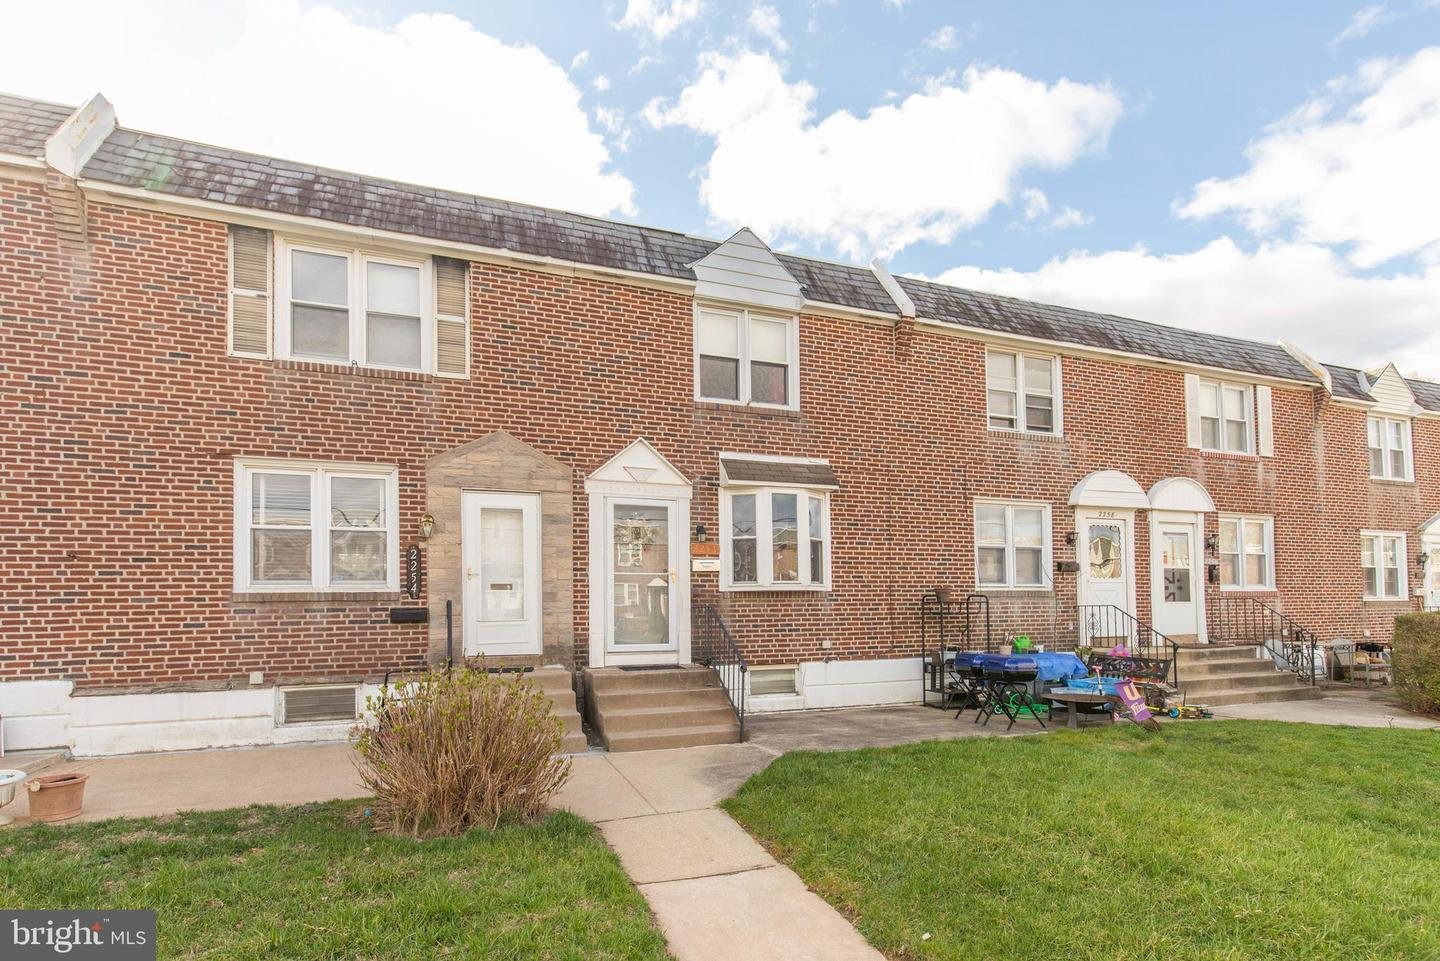 2256 S Harwood Avenue Upper Darby, PA 19082